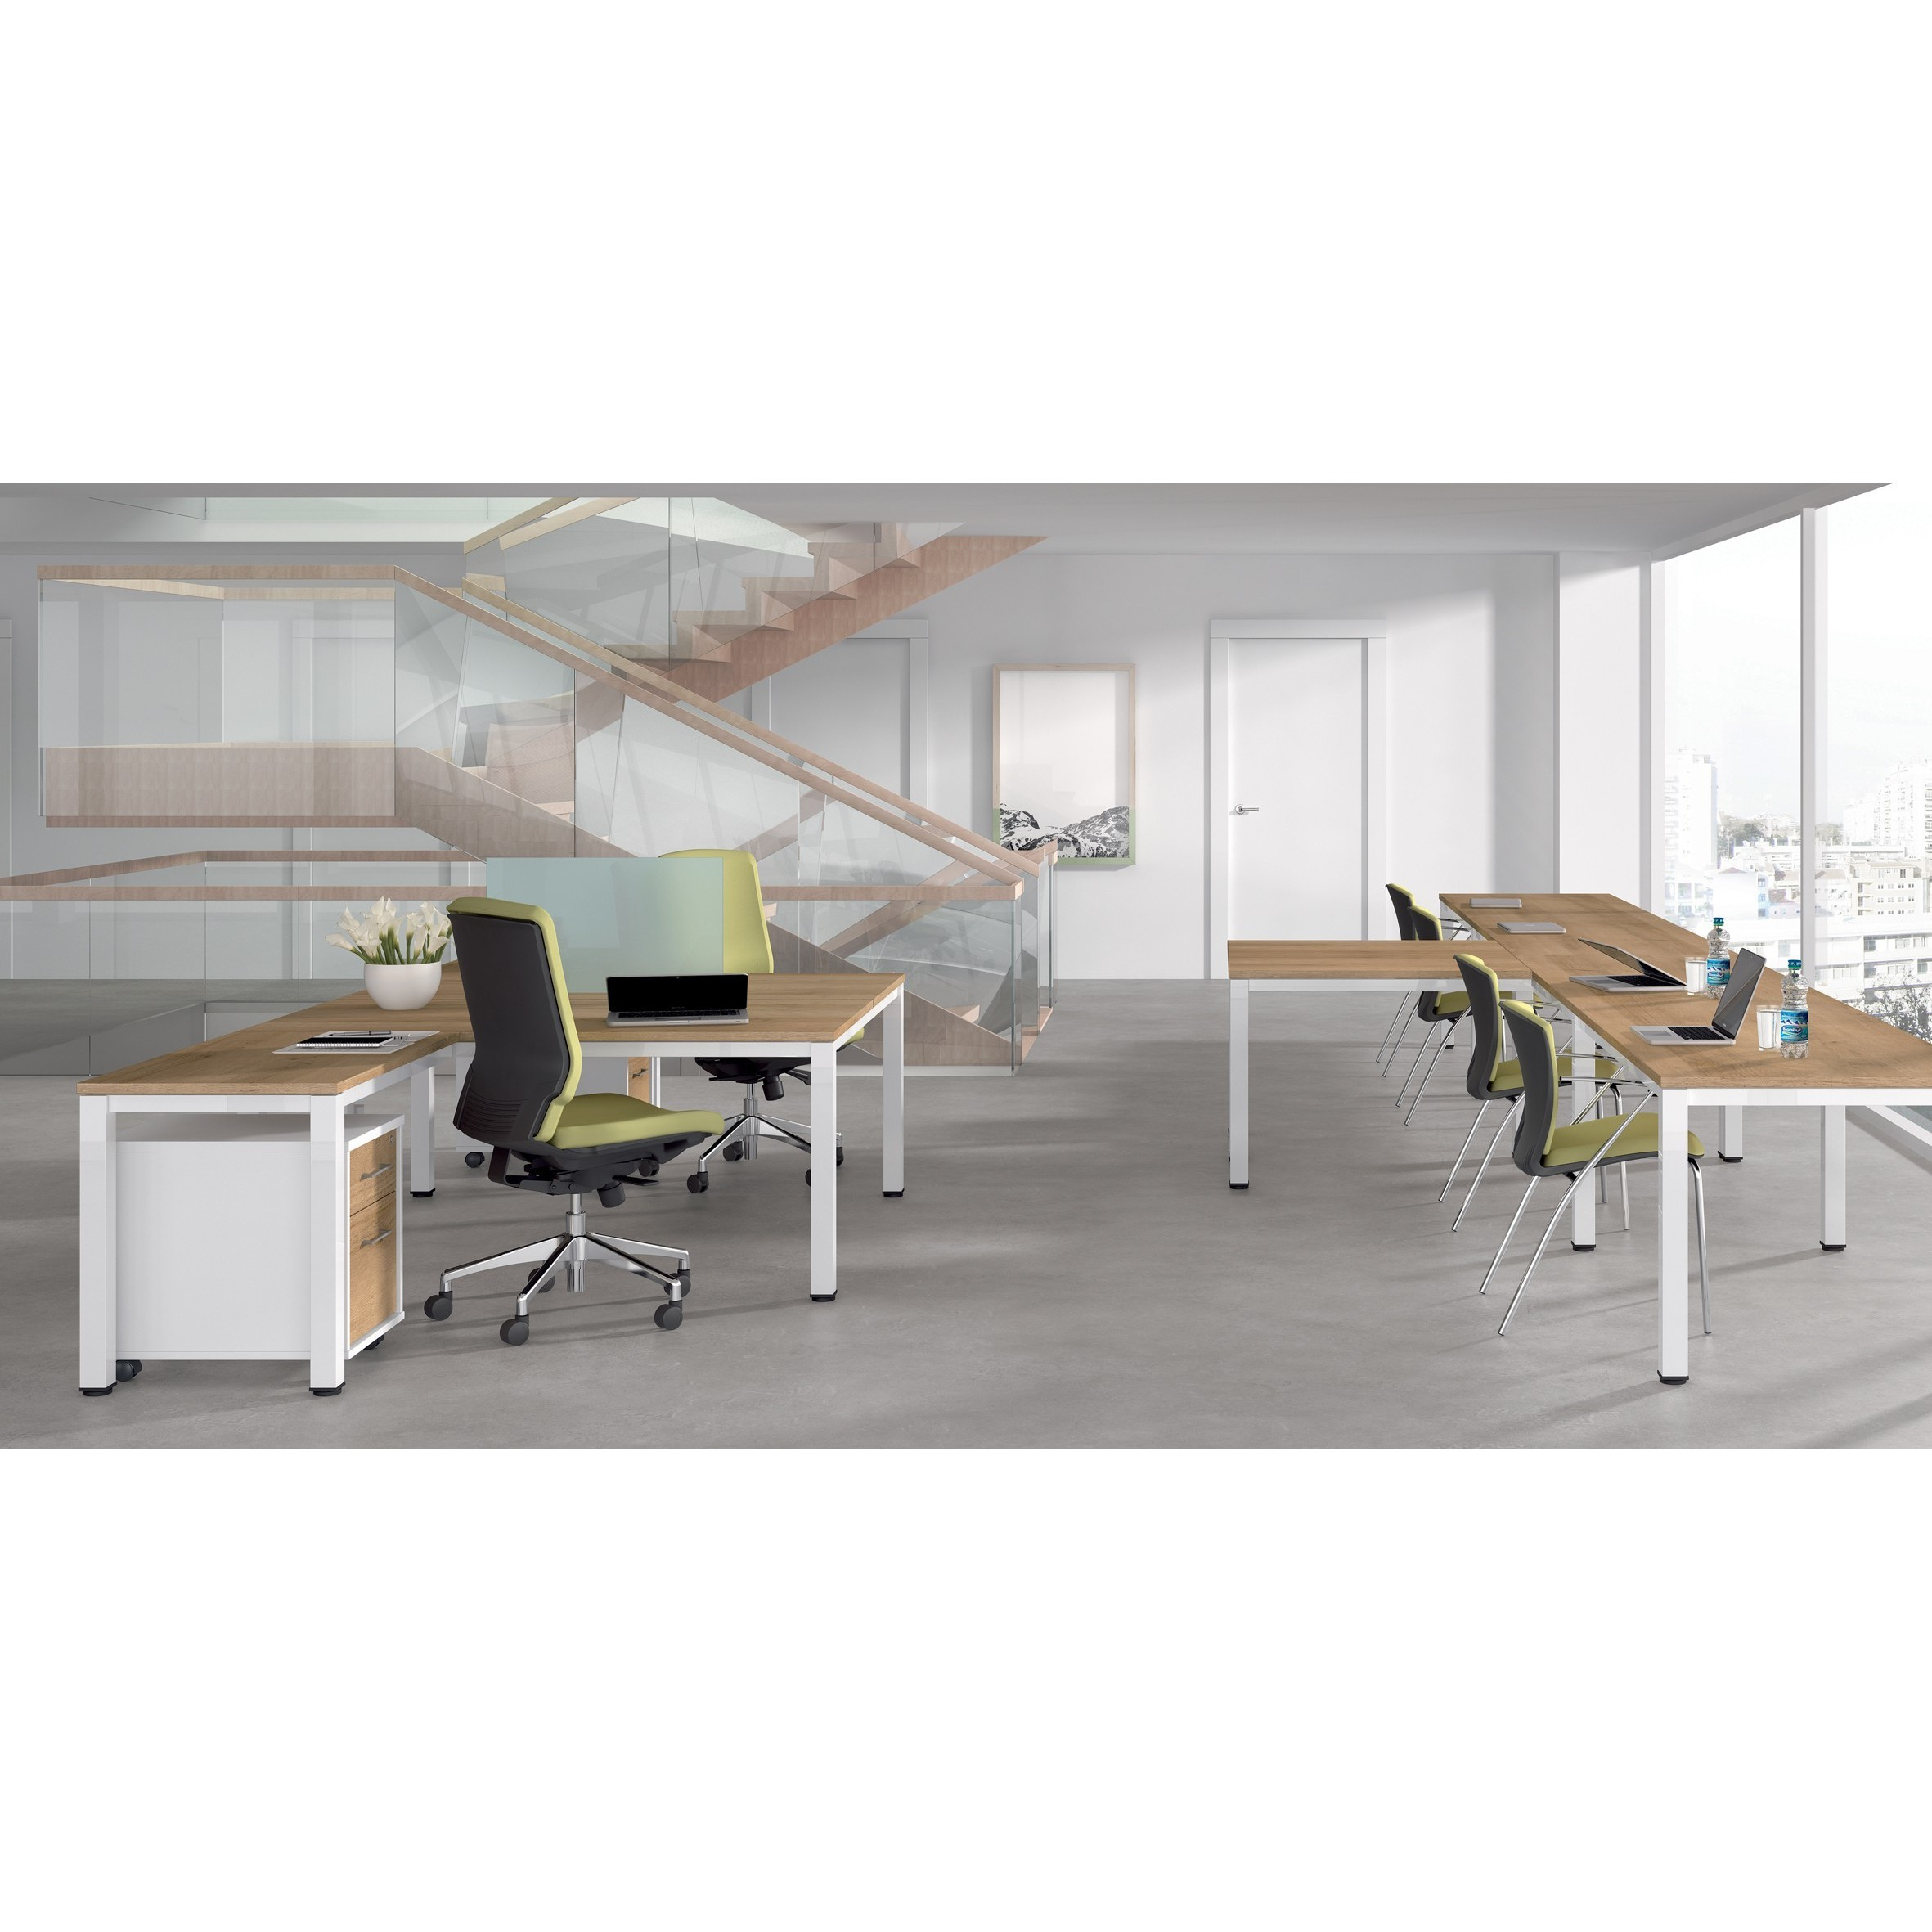 TABLE OFFICE 'S EXECUTIVE SERIES 180X80 WHITE/BEECH